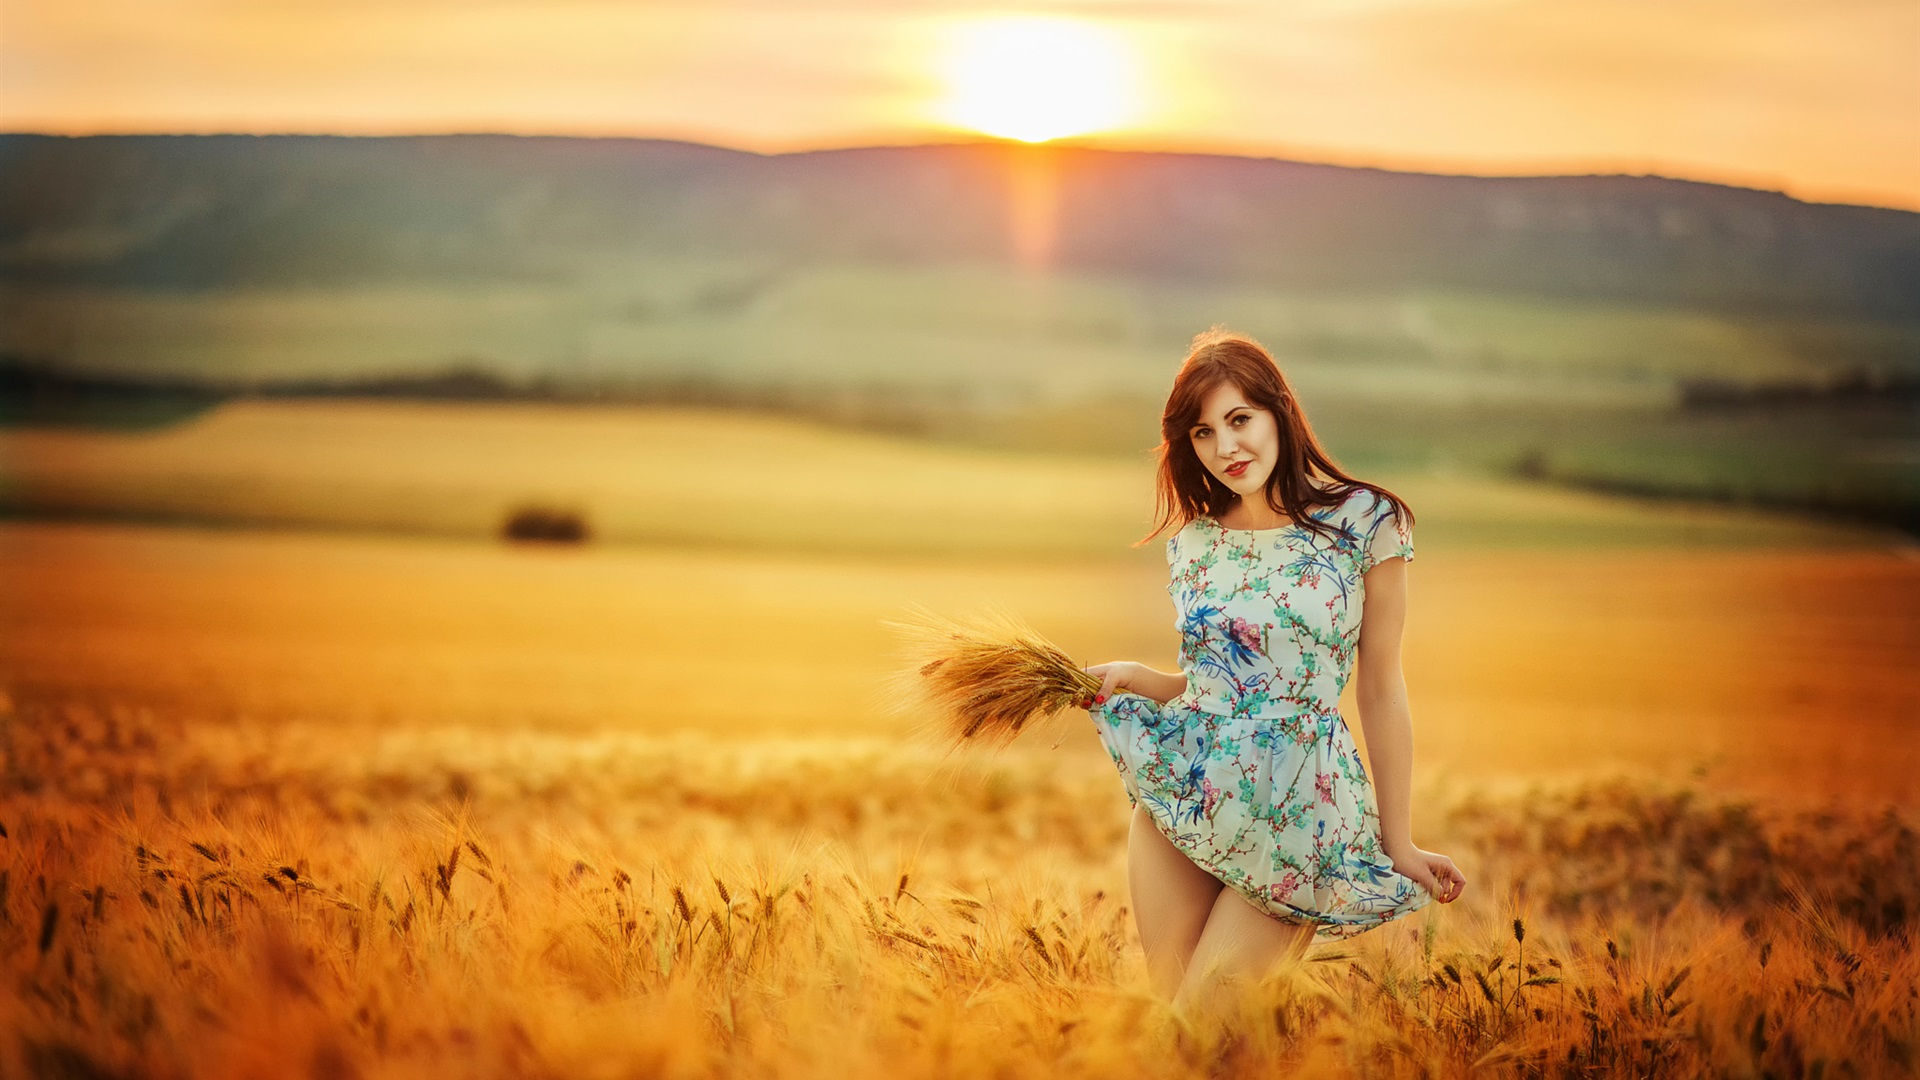 Wallpaper Summer Girl In The Wheat Field Sunset 1920x1440